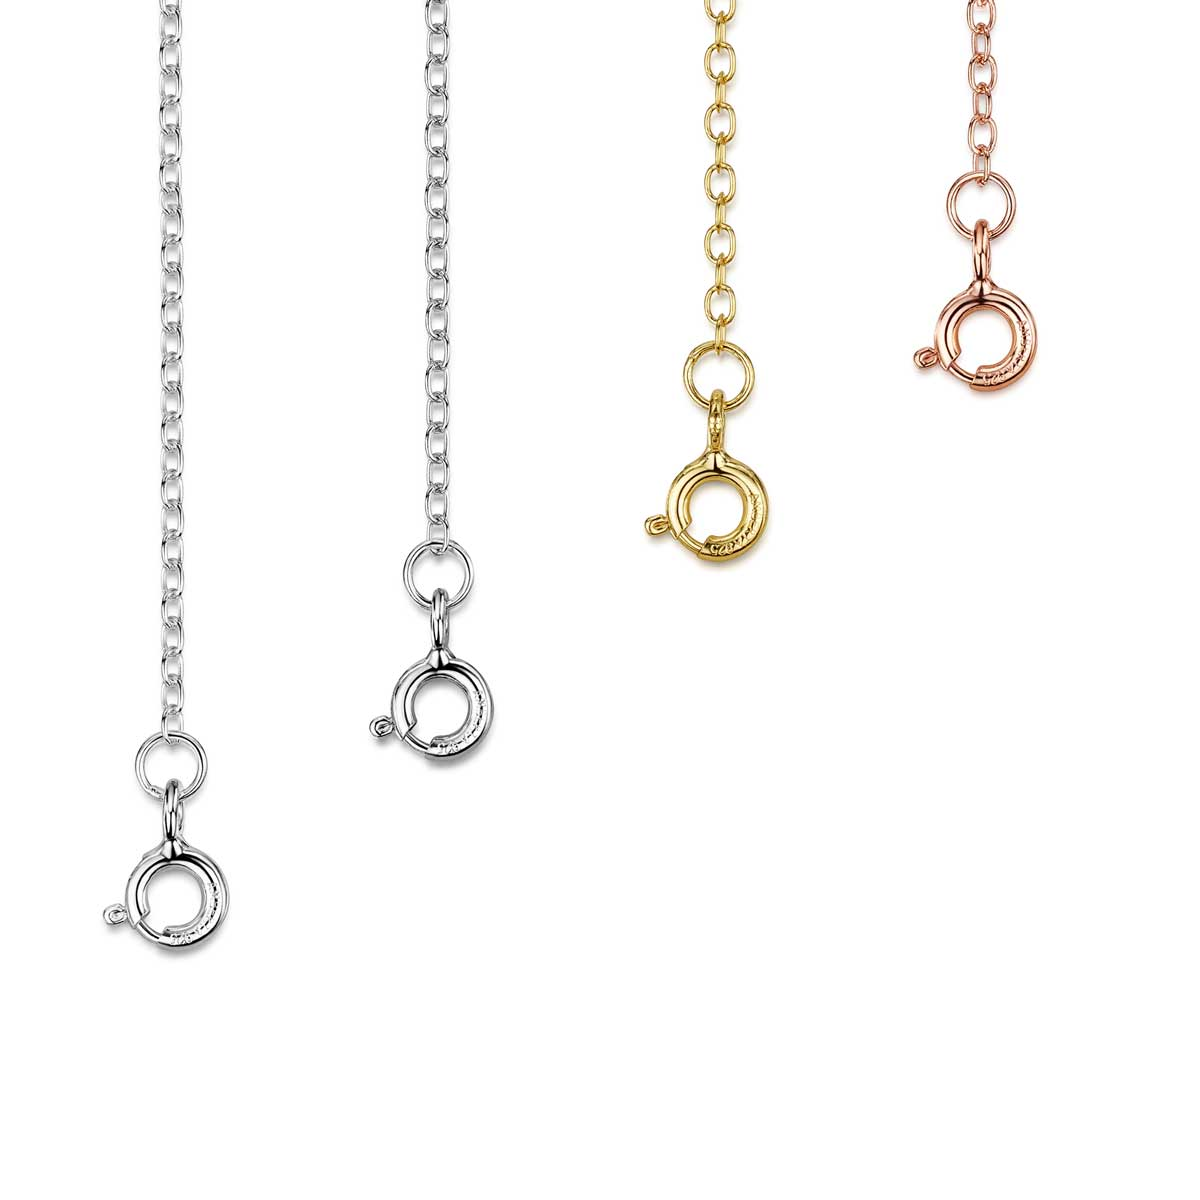 Extender Chain with Jump Ring and Lobster Clasp Nickel-Free 925 Sterling Silver